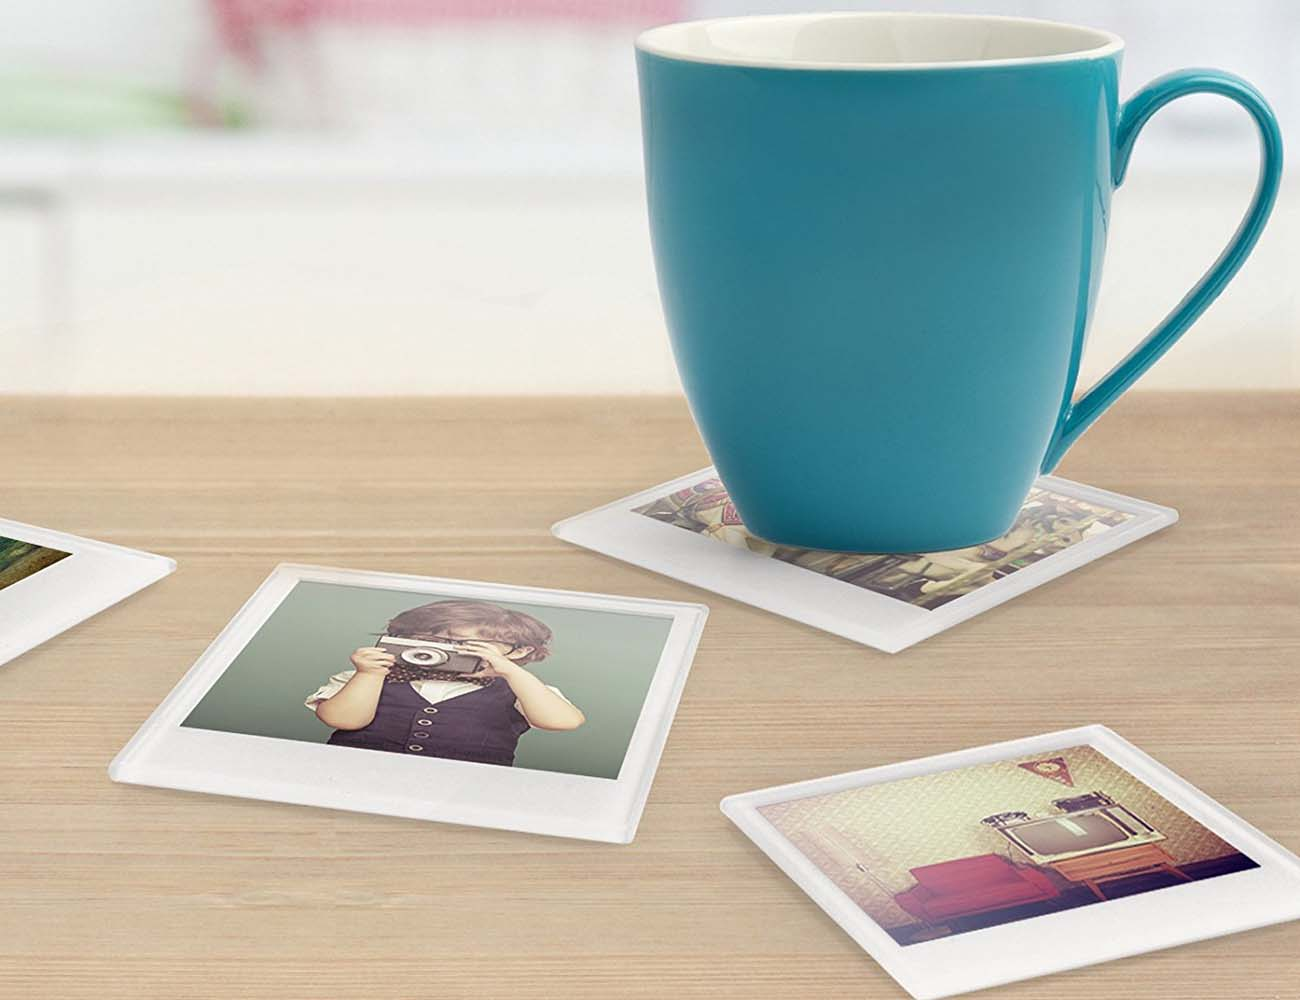 Instant Photo Coasters – With Provision to Insert Your Photos